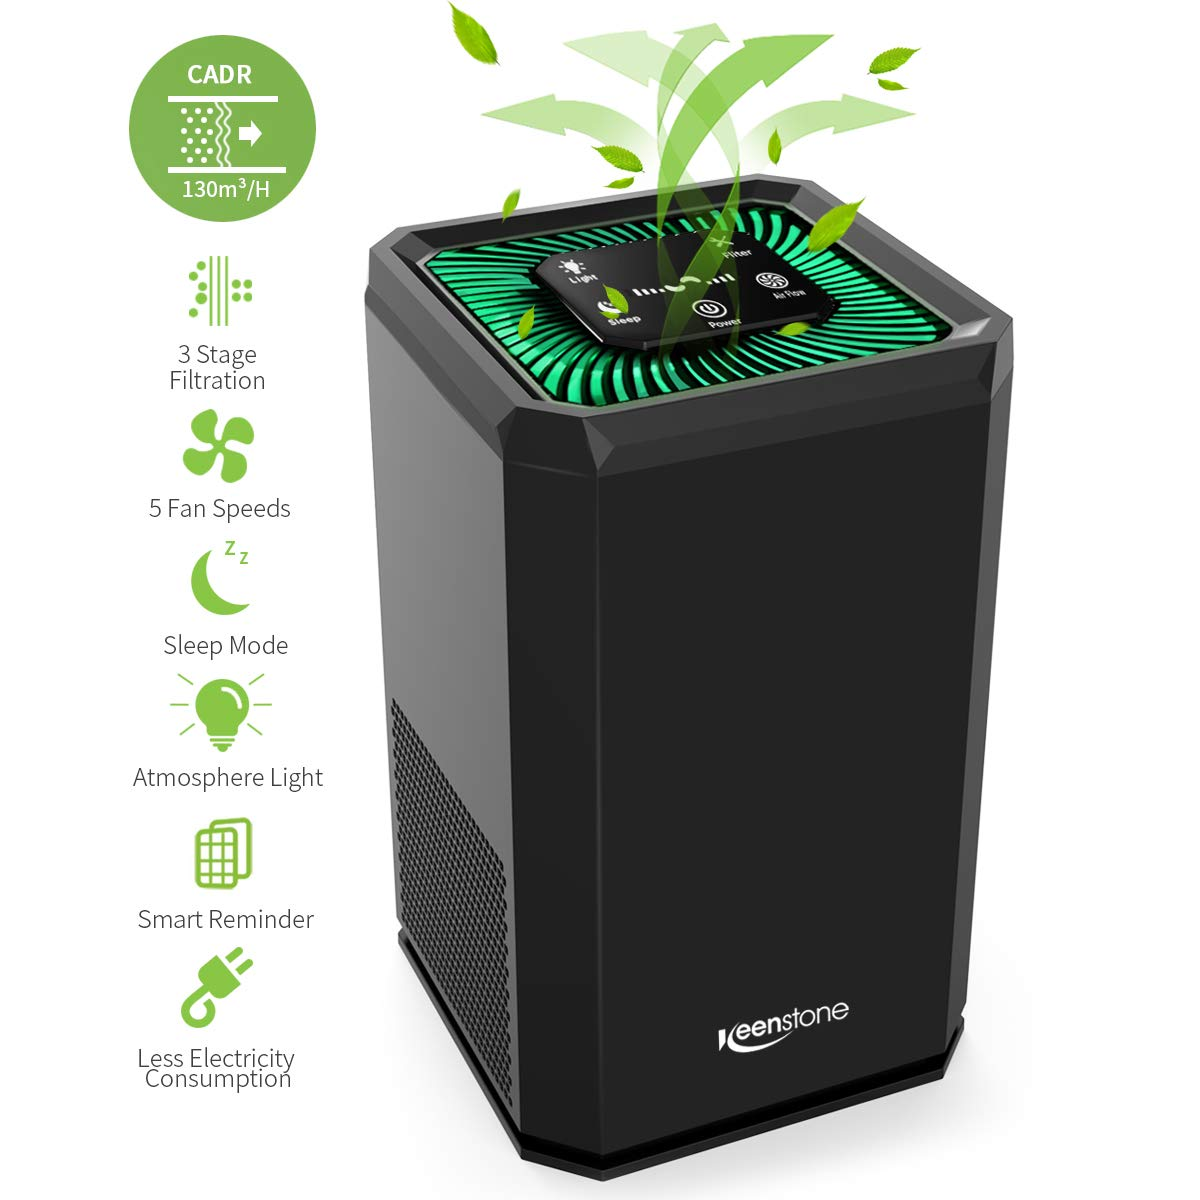 Upgraded Air Purifier for Home Allergies and Pets, 5 Speed, 3 in 1 True HEPA Filter, Ultra Quiet Air Cleaner for Hairs Pet Dander Smokers Mold Pollen PM 2.5, Perfect for Bedroom Office